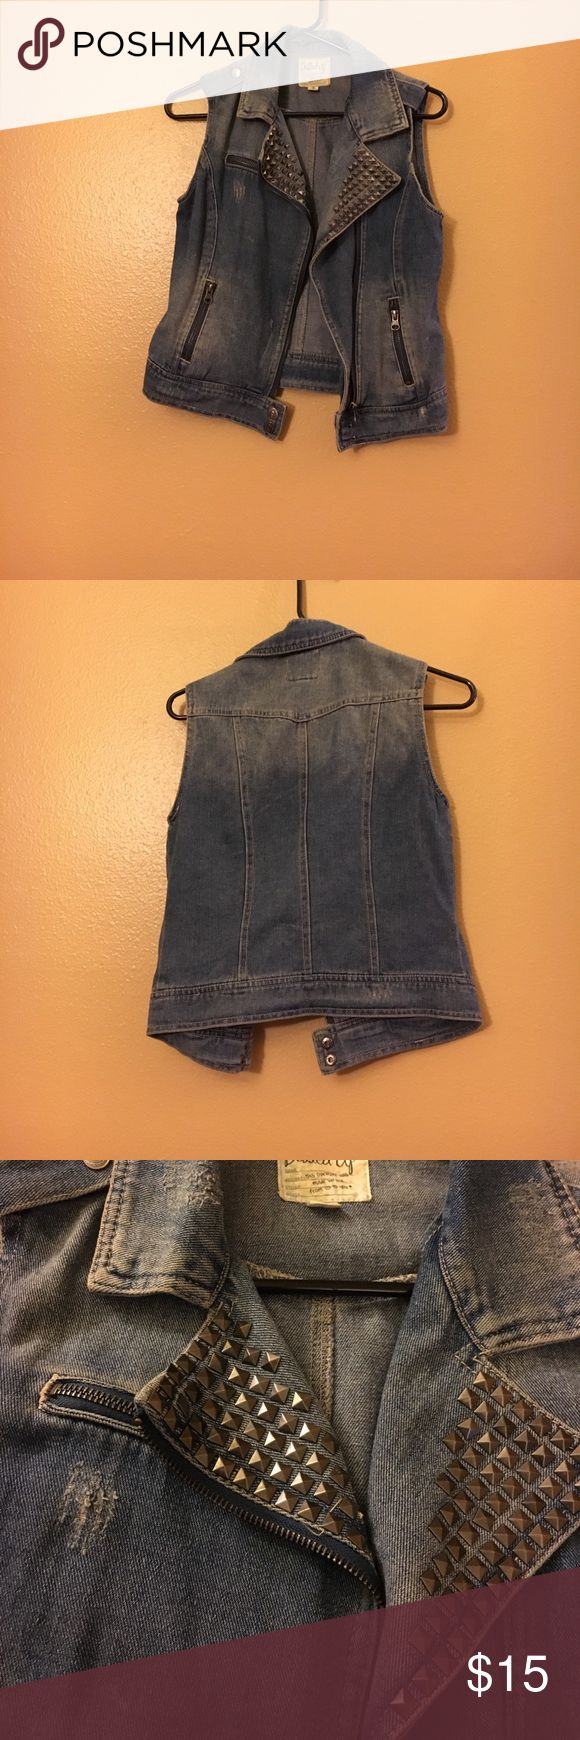 Distressed studded denim vest Distressed studded denim vest! Light wear no stains and all tears visible were there when purchased! Very cute layering vest! Has pockets also ❤️ Jackets & Coats Vests